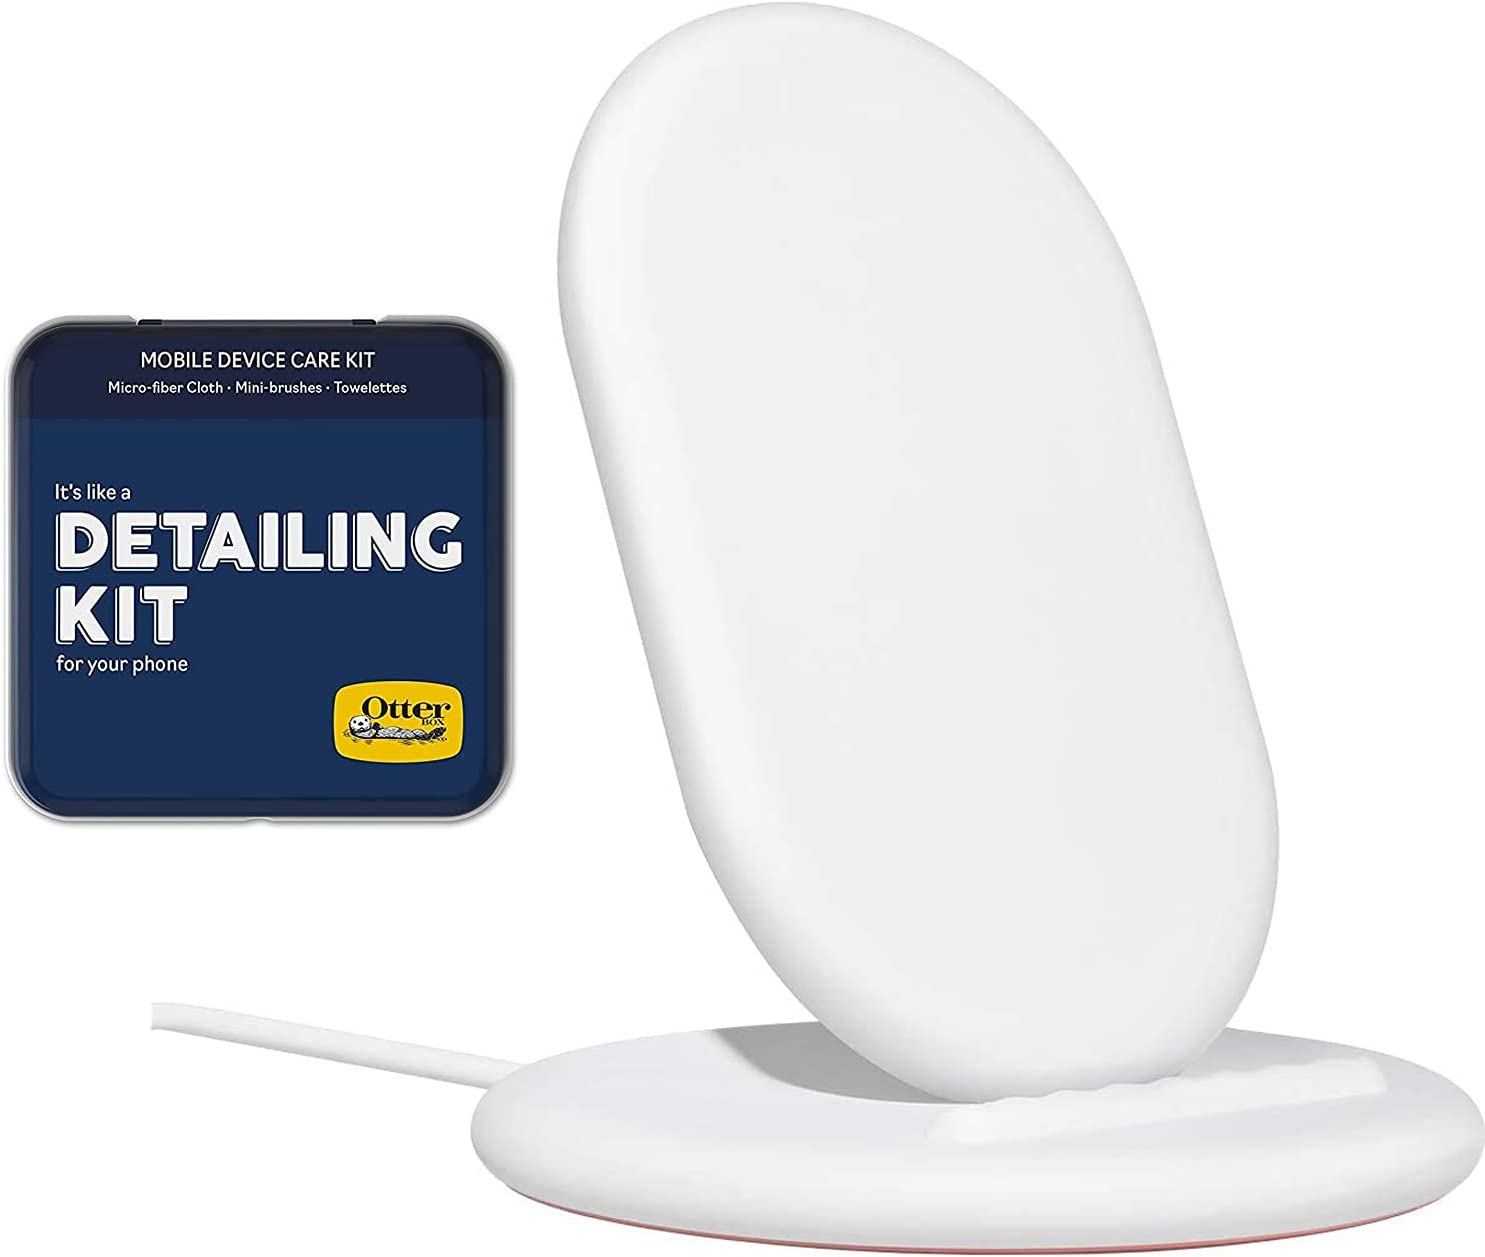 Google Pixel Stand Fast Wireless Charger - Pixel Stand for Pixel 5, Pixel 4, Pixel 4XL, Pixel 3 and Pixel 3XL w/Detail Cleaning Kit for Phone (Micro Fiber Cloth, Mini Brushes, Towelettes) - Bundle